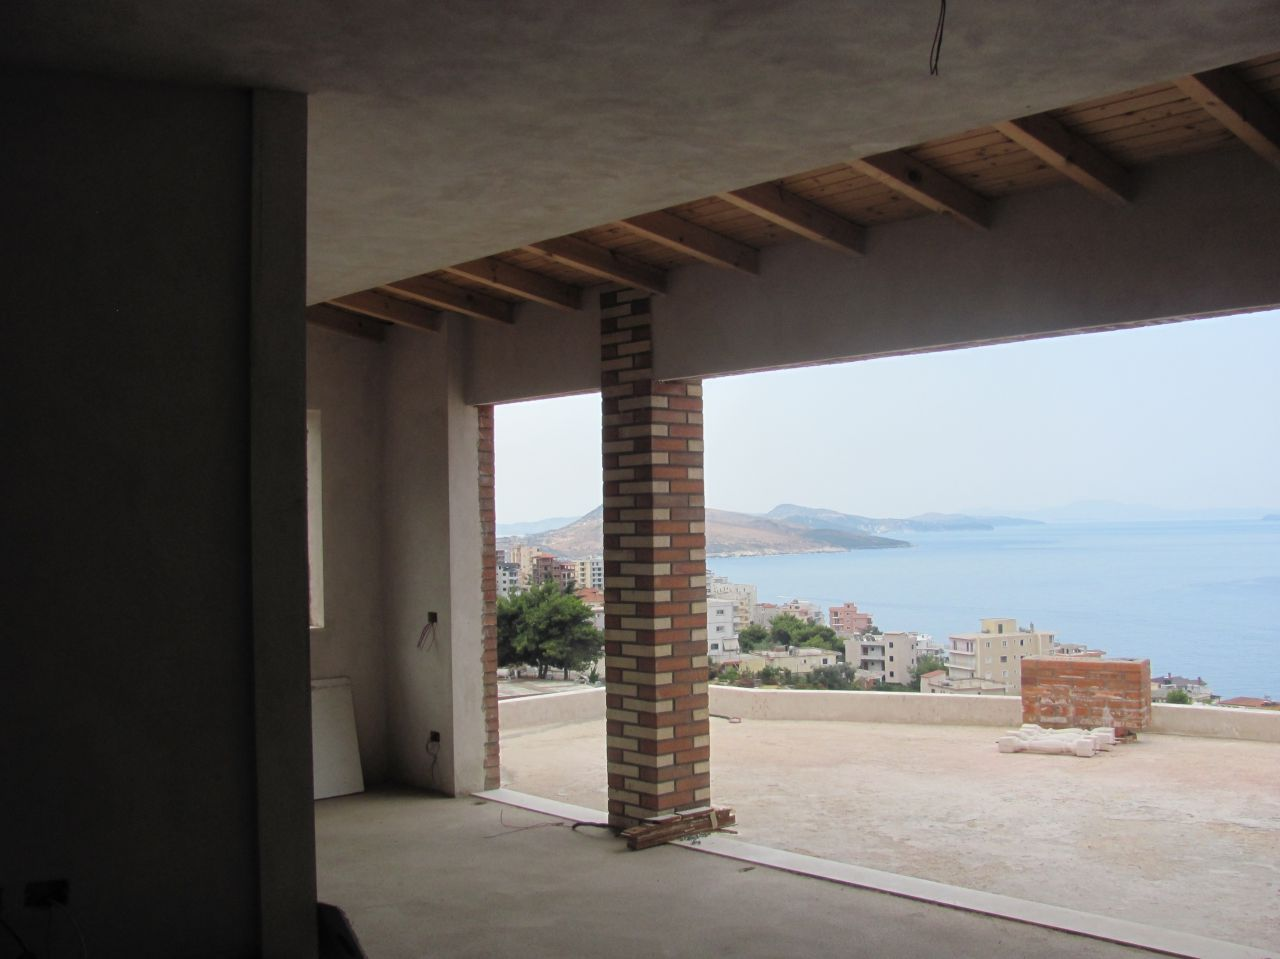 penthouse for sale in saranda albania in the seaside of the ionian beach